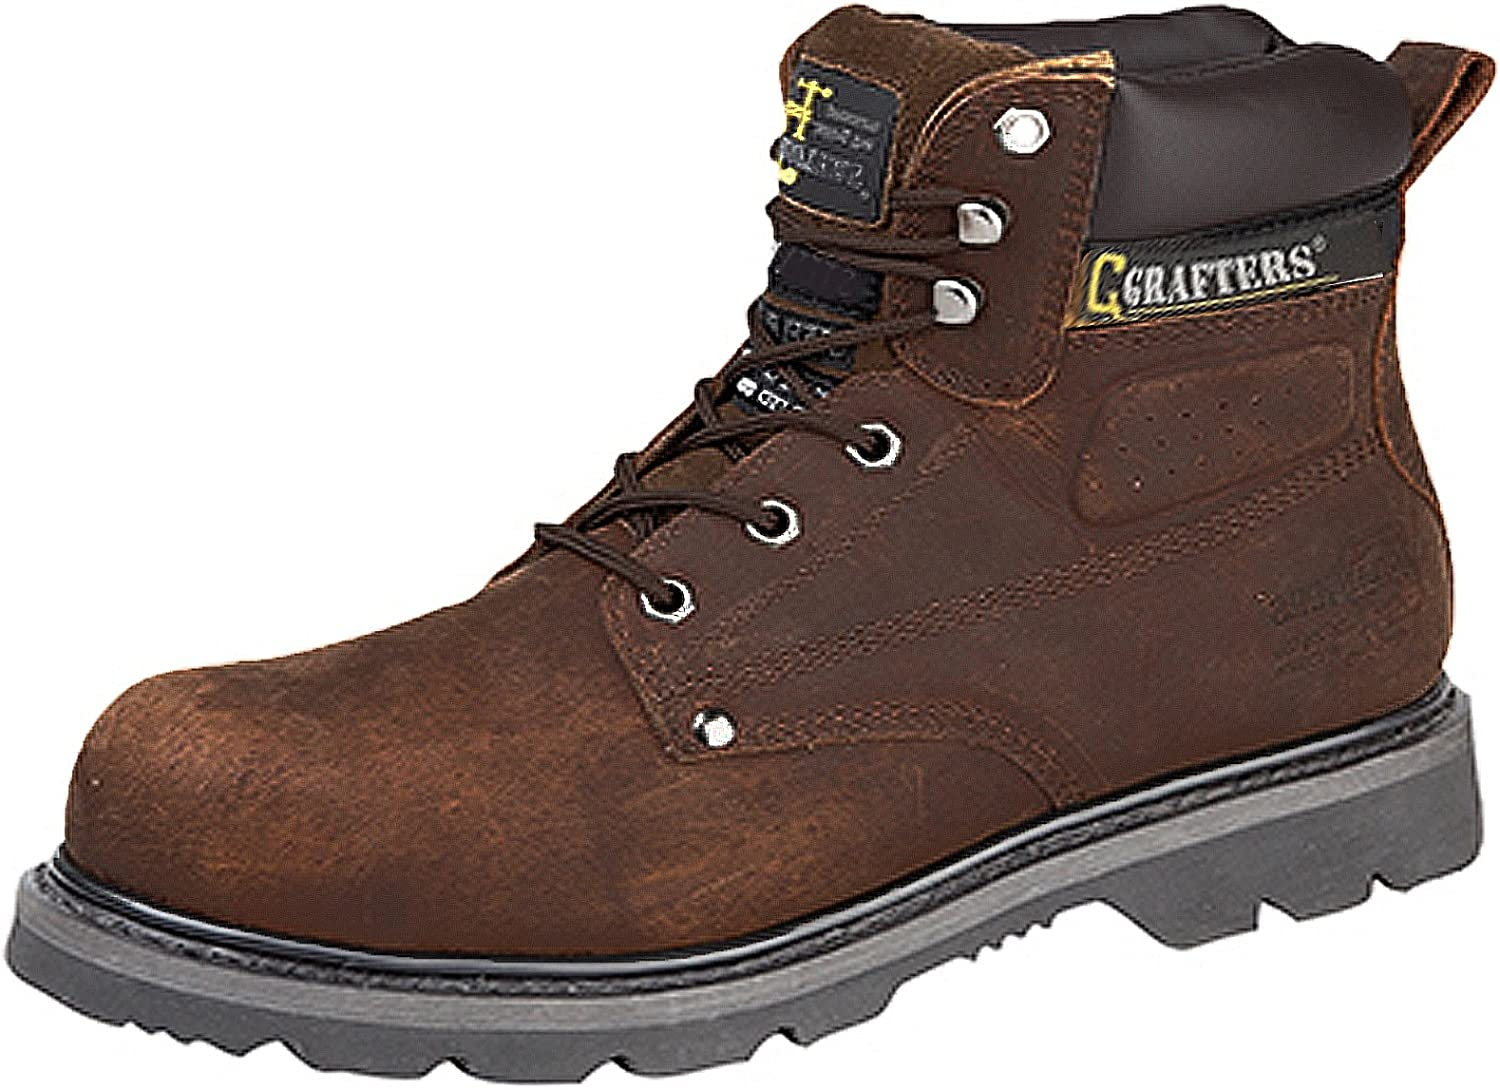 Grafters Gladiator Mens Boots Safety Toe Cap And Steel Midsole Goodyear Welted